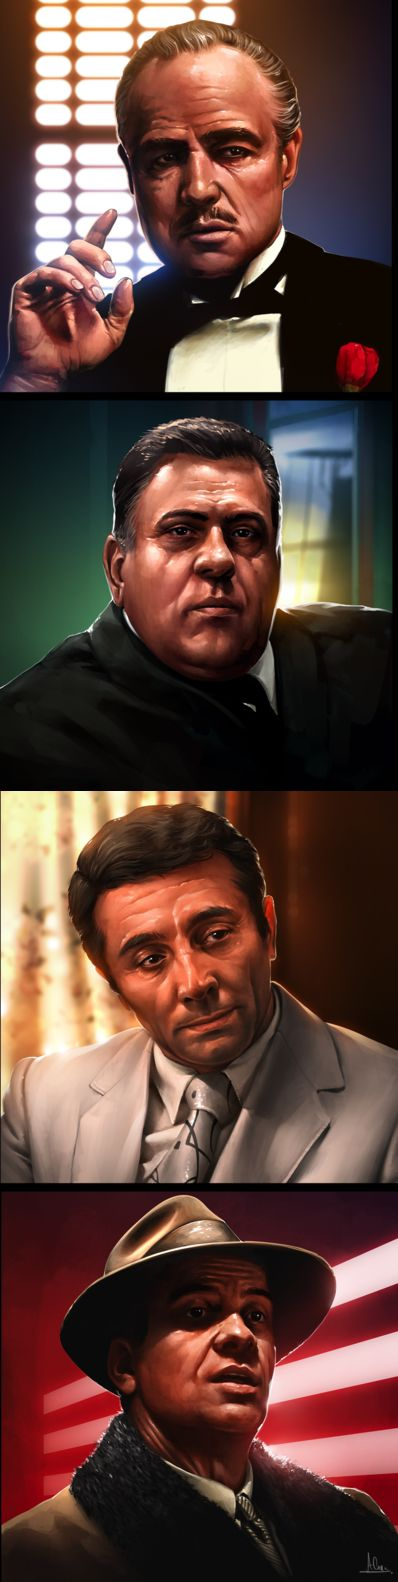 The Godfather - stunning portraits of some of the movie protagonists: Don Vito Corleone; Luca Brasi; Johnny Fontaine; and Virgil 'The Turk' Sollozzo #GangsterMovie #GangsterFlick